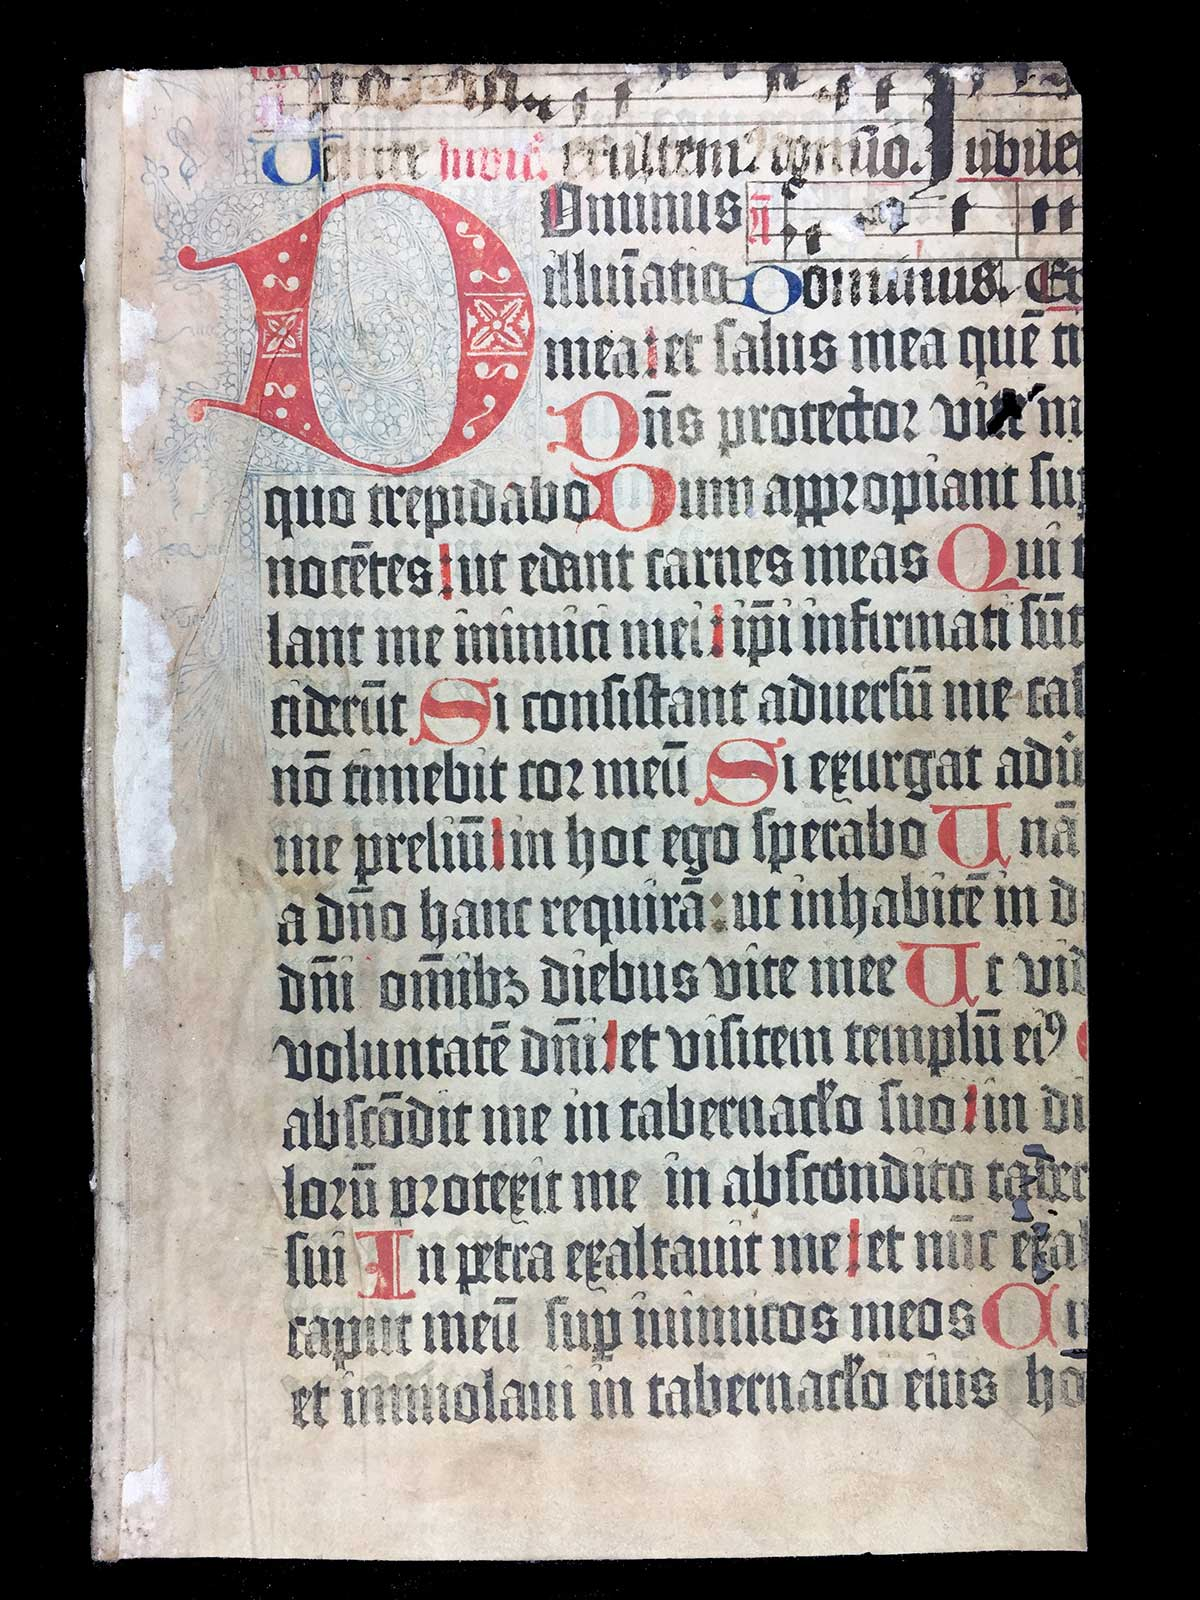 [Psalterium, commonly known as the Mainz Psalter] (Mainz: Johann Fust and Peter Schoeffer, 14 August 1457)], 37 recto.